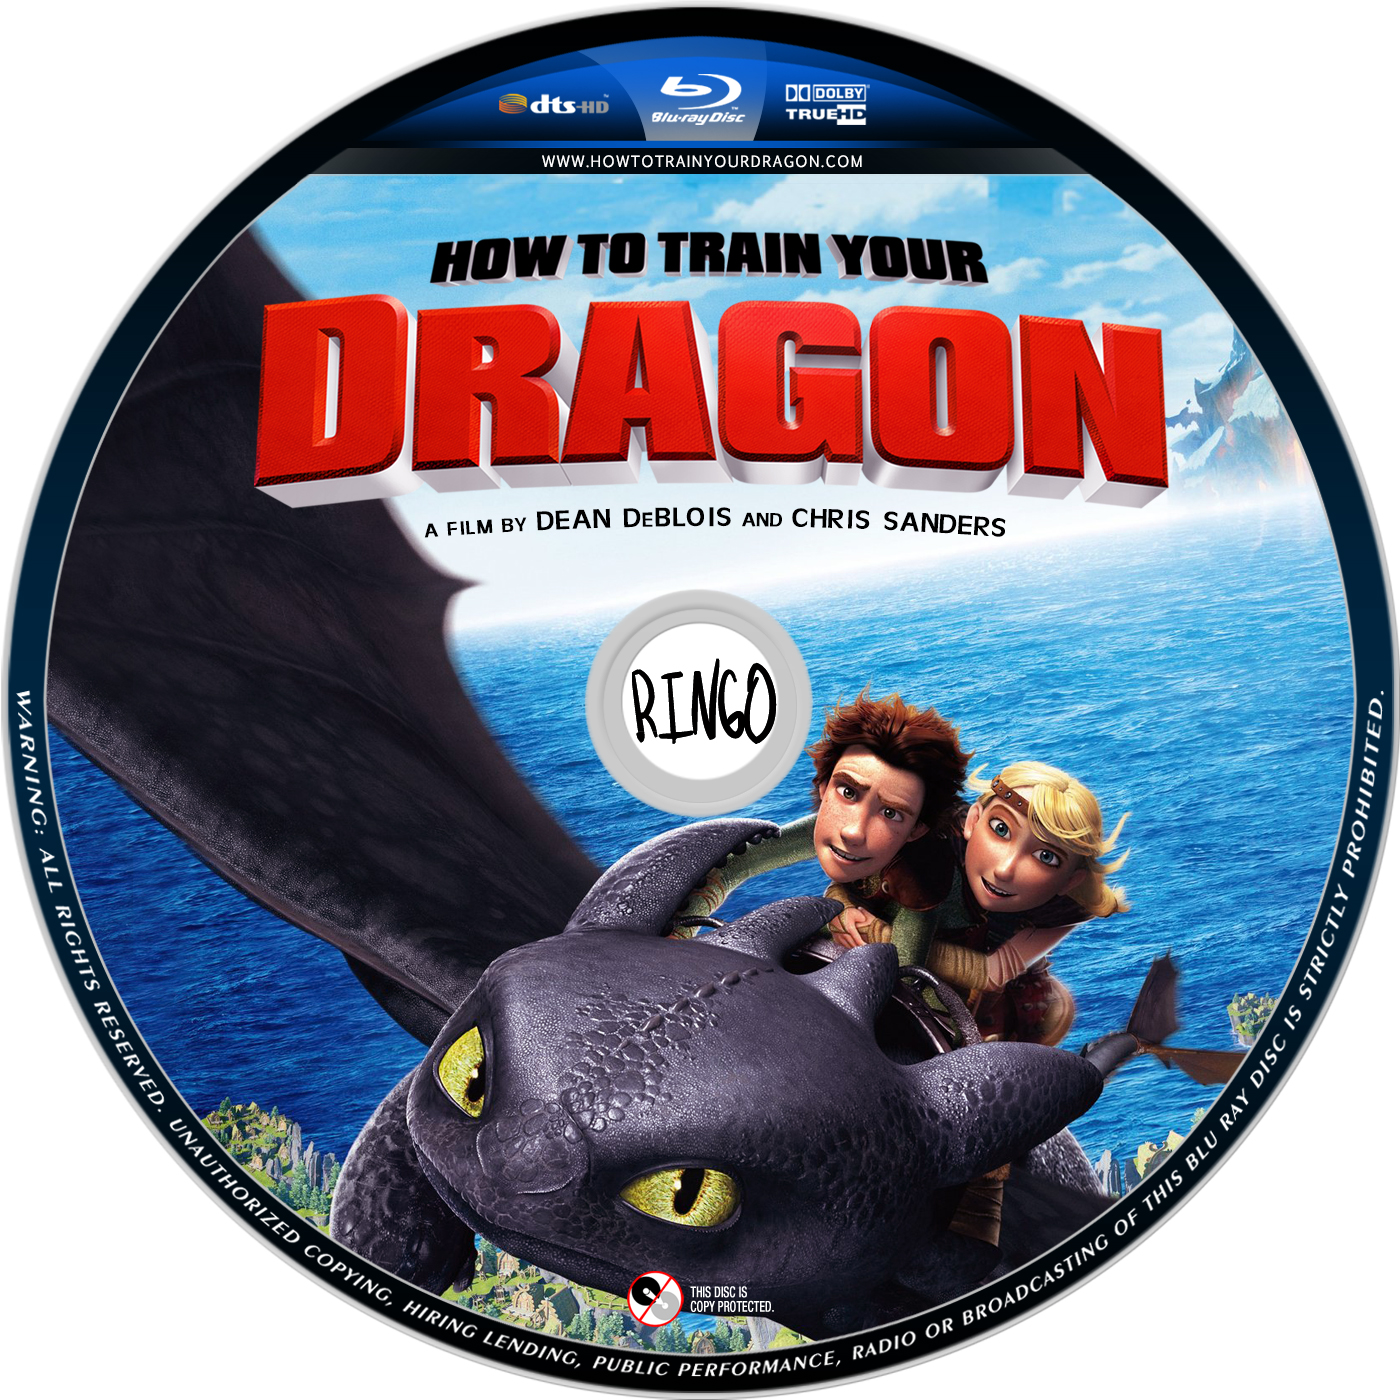 Coversx how to train your dragon high quality dvd click here for ccuart Images